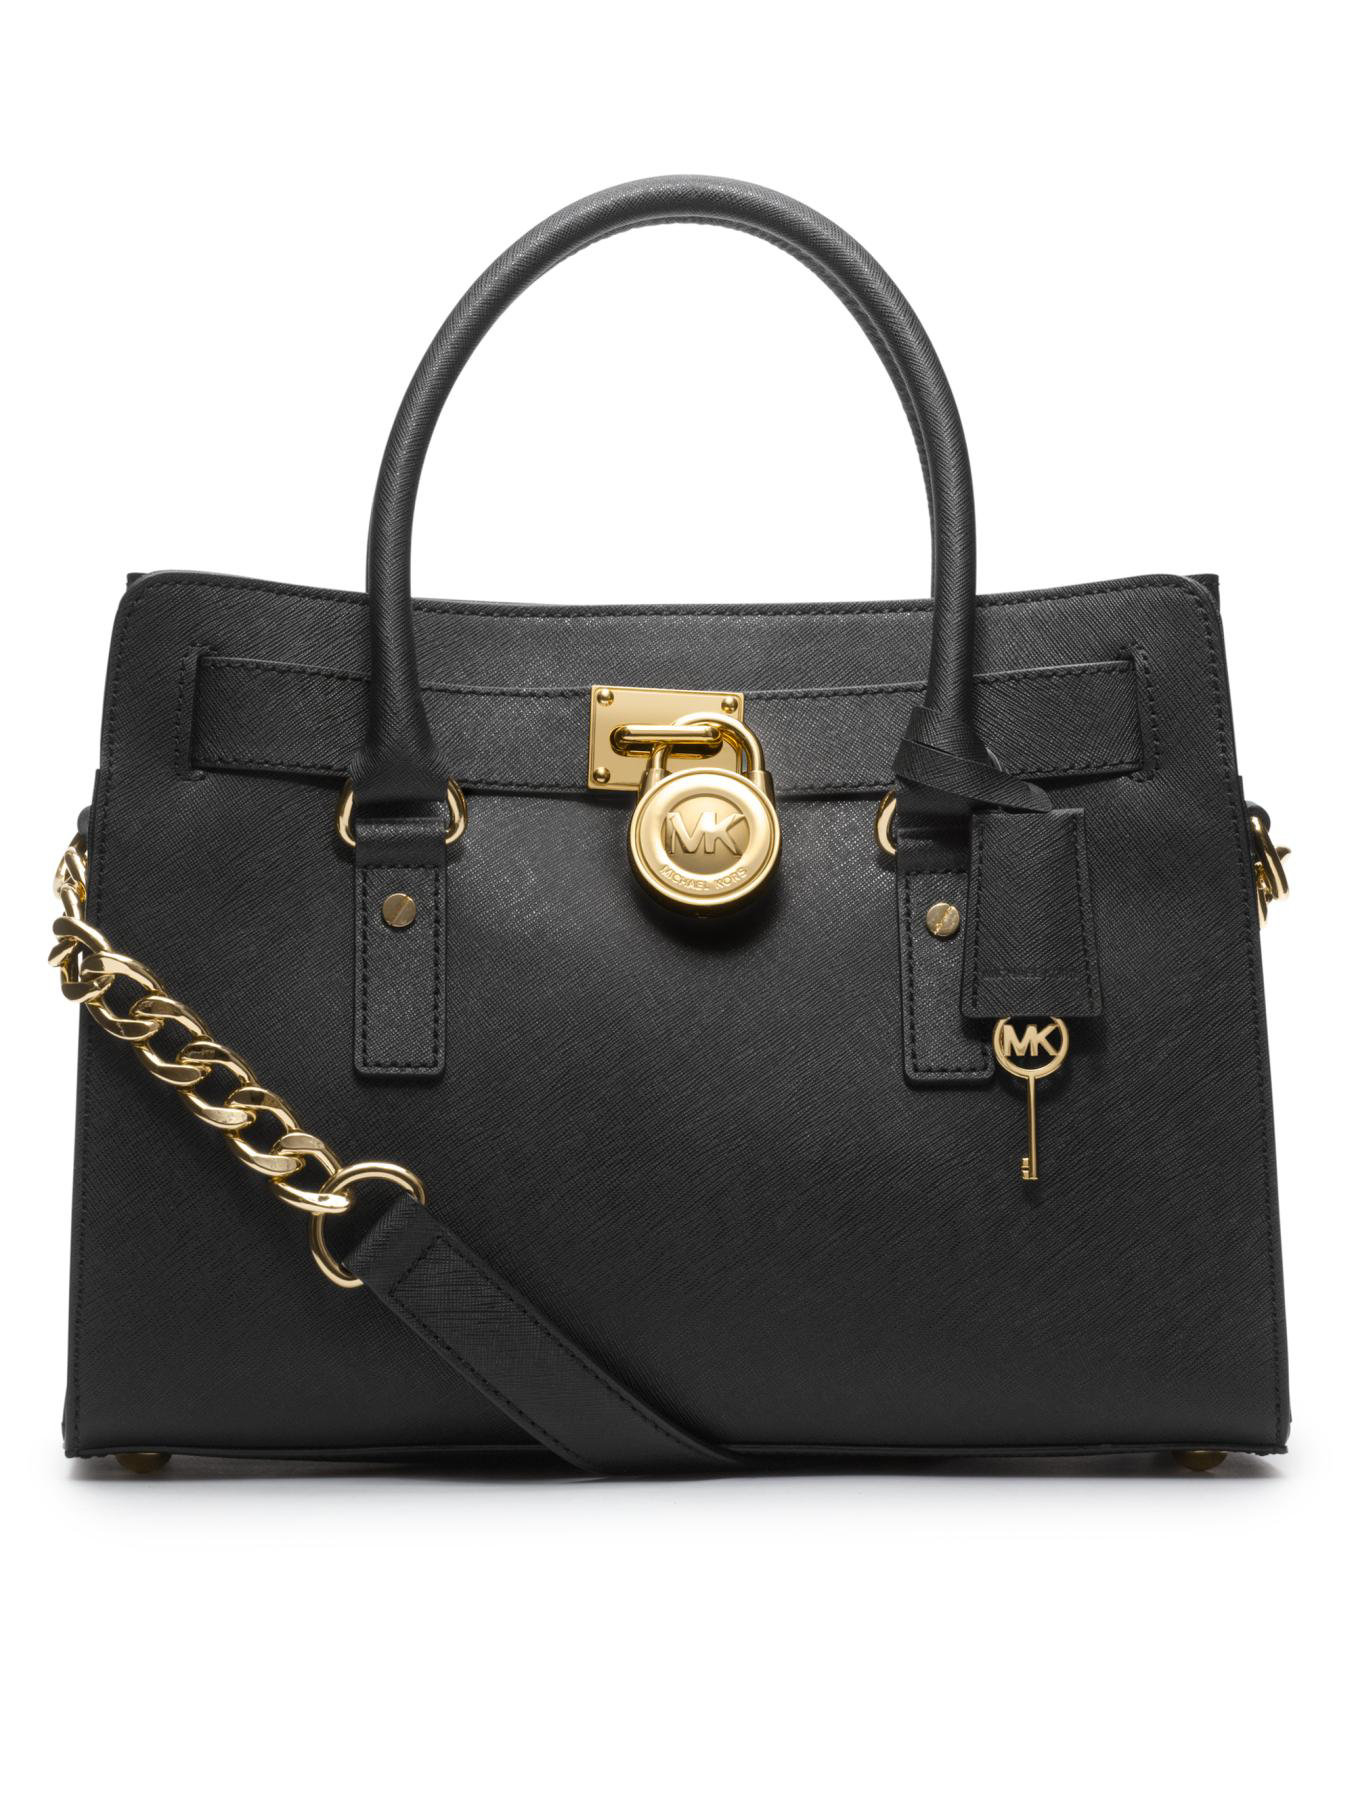 Michael Kors Hamilton Laukku : Michael kors hamilton saffiano leather satchel in